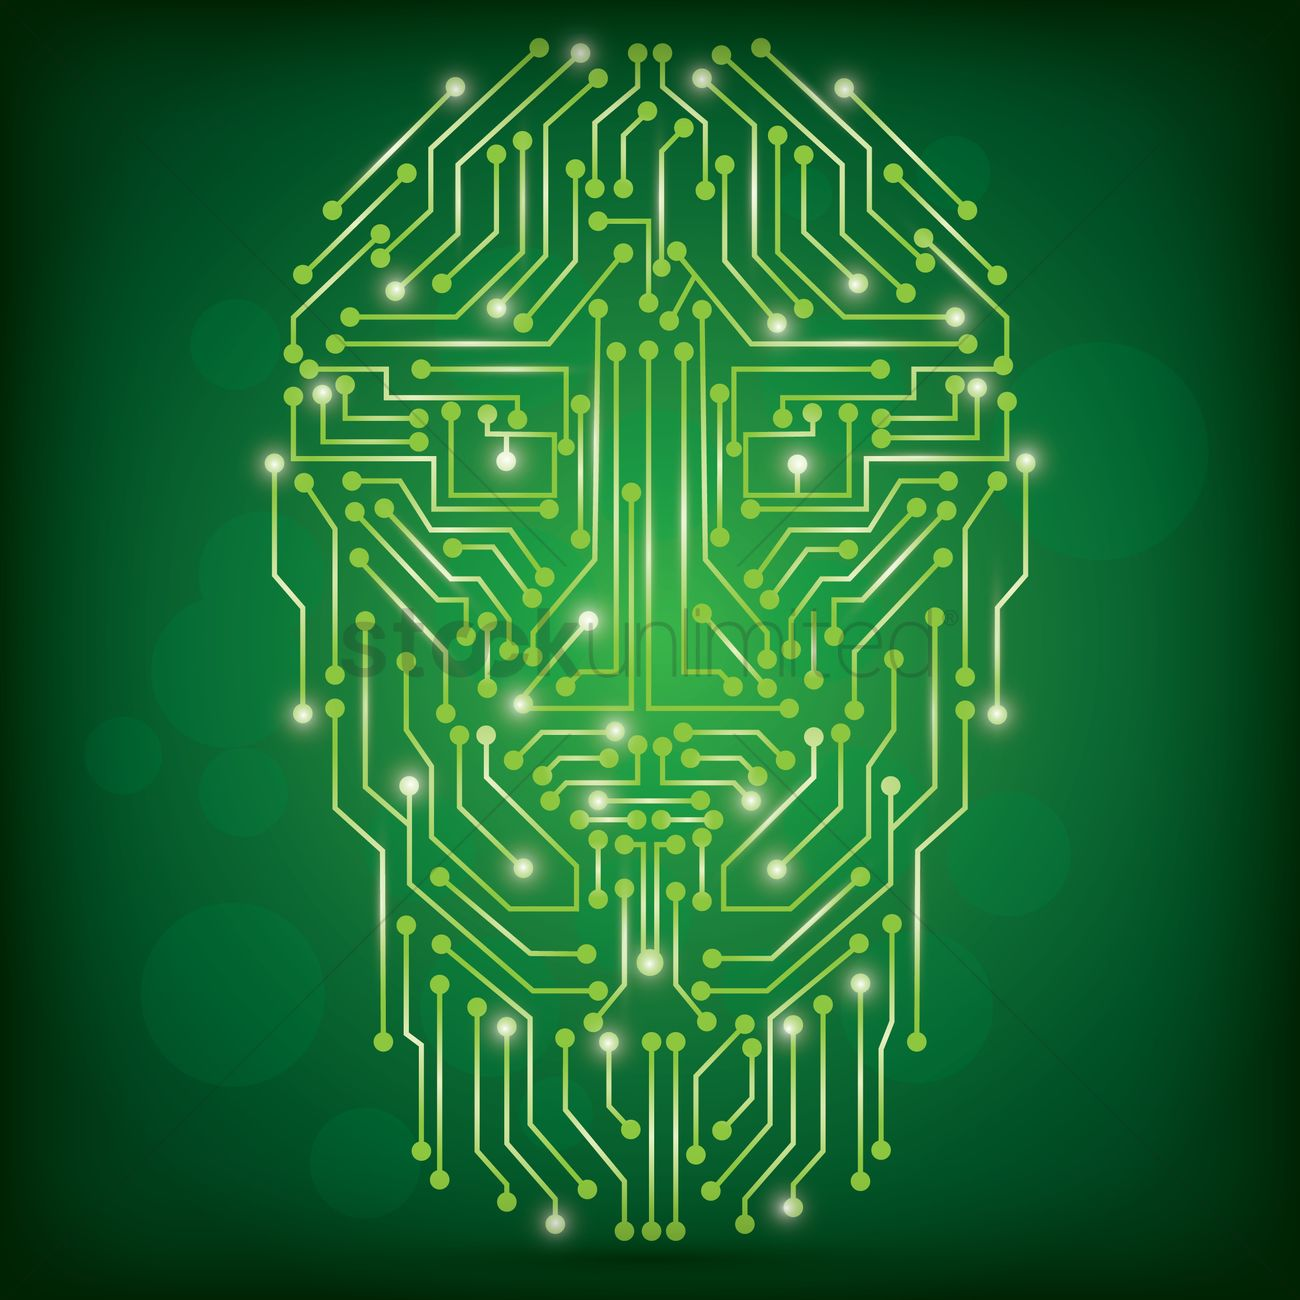 Circuit Board Face Complete Wiring Diagrams Games Human Design Vector Image 1948280 Stockunlimited Rh Com For Kids Online